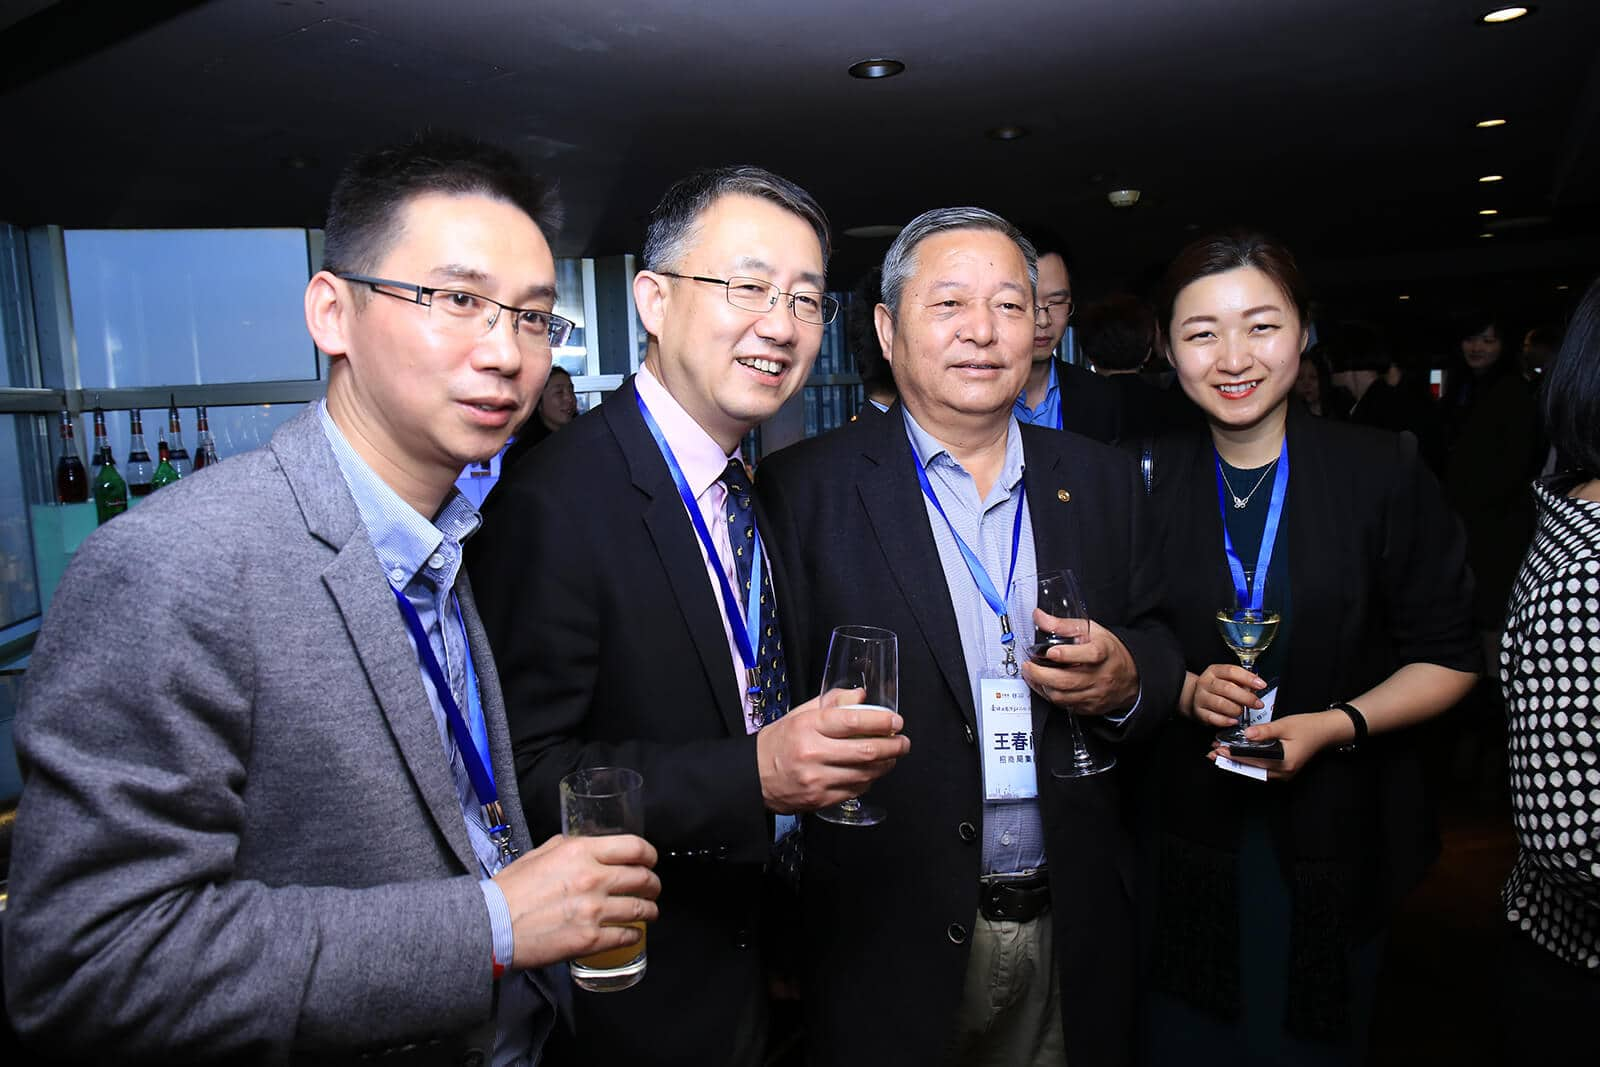 party-2-2017-global-general-counsels-and-business-leaders-shanghai-forum